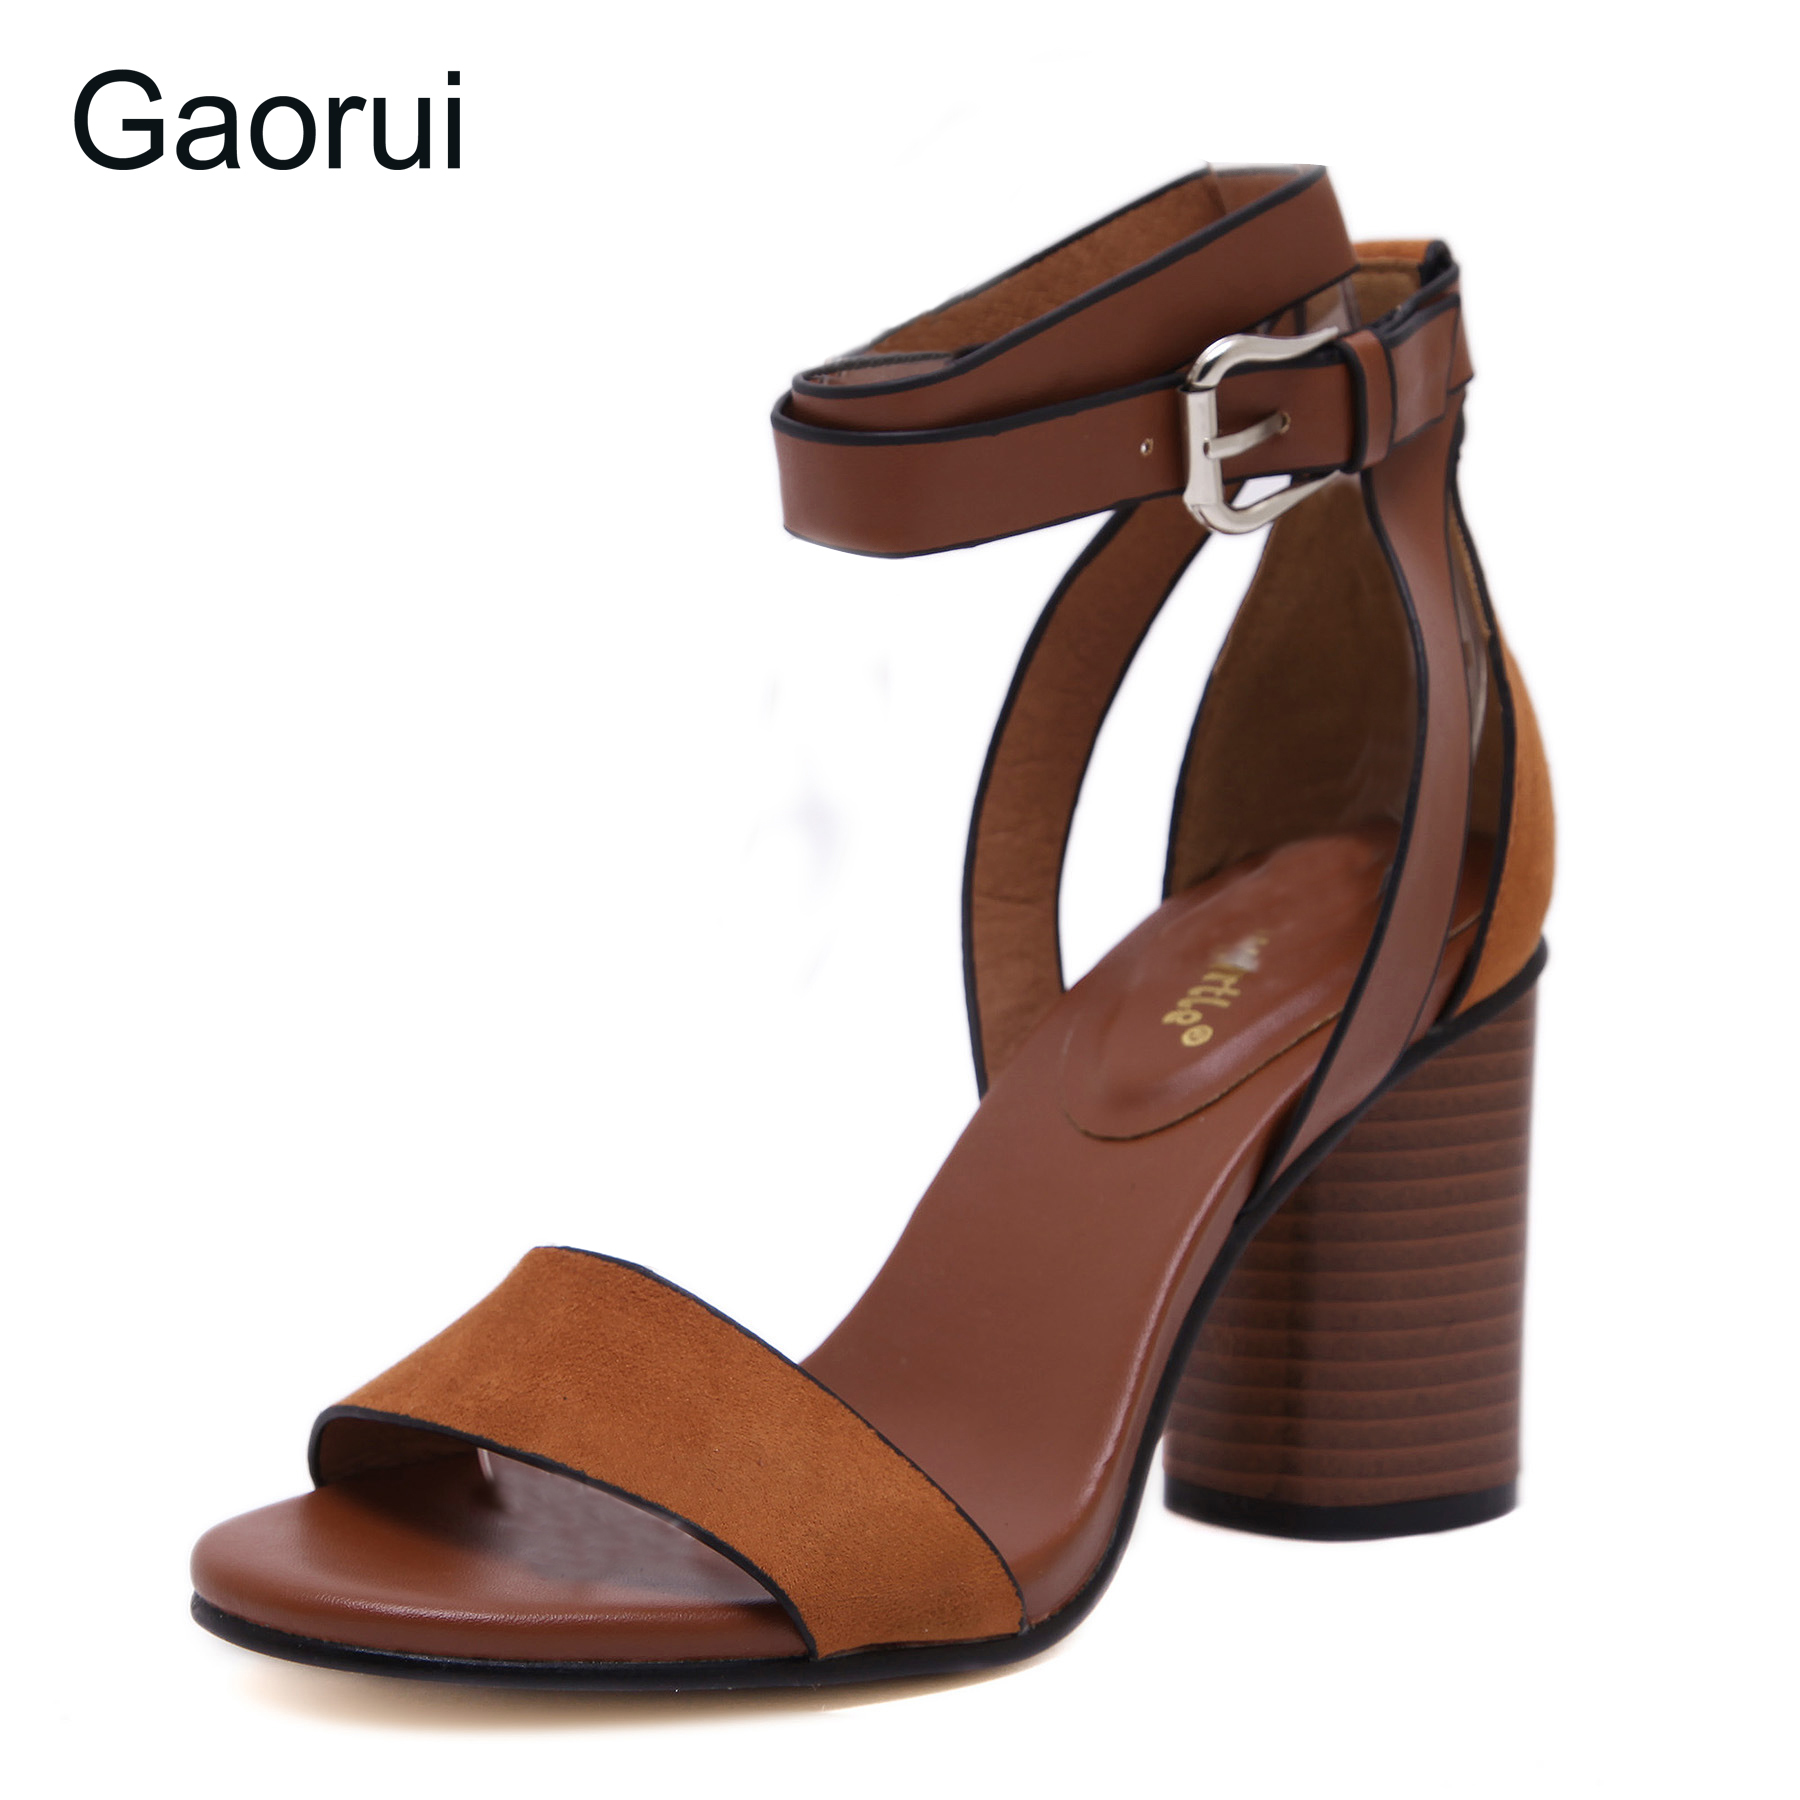 GAORUI 2017 New Retro Women Sandals Flock Square Heels Buckle Strap Leisure Sexy Sandals Shoes Woman Ankle Strap Zapatos Mujer lucyever women vintage square toe flat summer sandals flock buckle casual shoes comfort ankle strap women footwear mujer zapatos